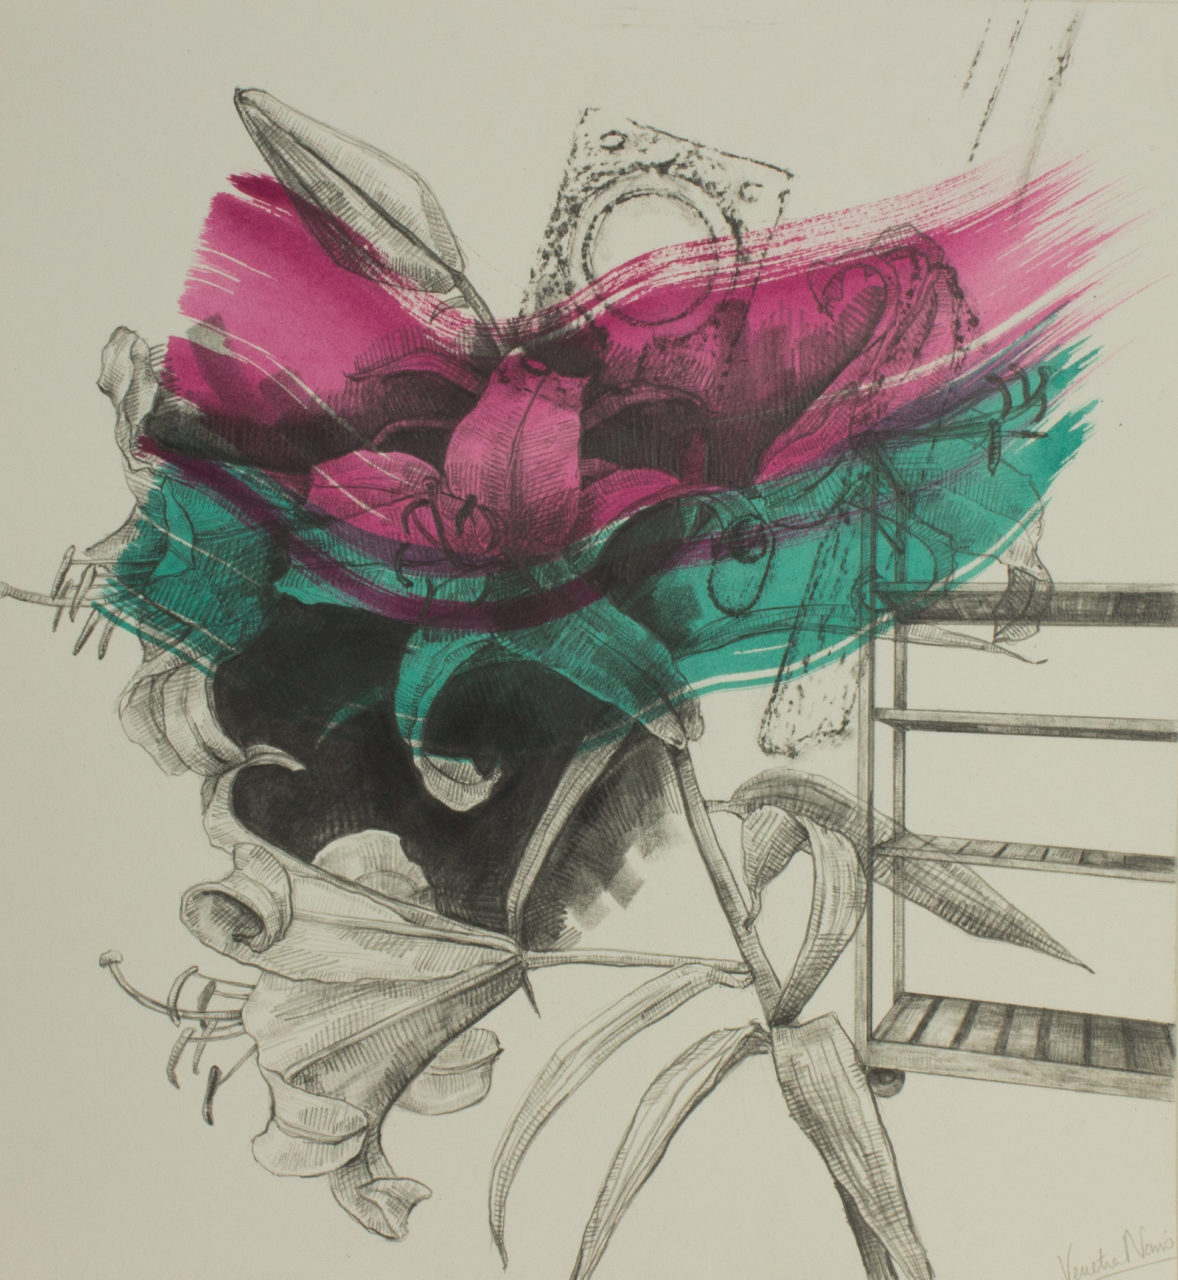 Rainbows of choice, graphite and paint on board, 38.2 x 35.4 cm, £725